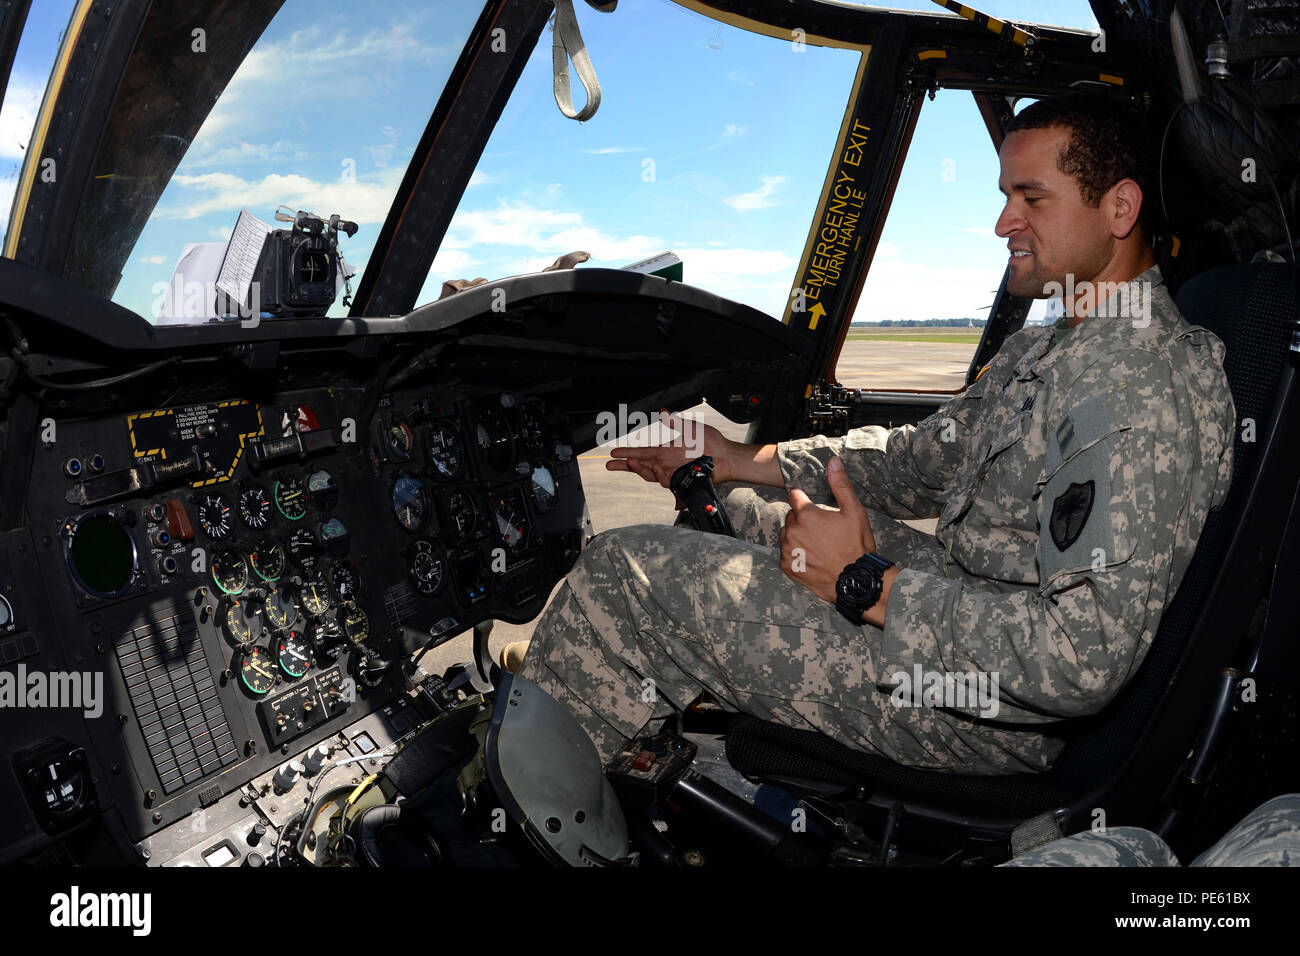 U.S. Army 1st Lt. T.J. Rose, a pilot with the South Carolina Army National Guard's 2-238th General Support Aviation Battalion Detachment 1, performs pre-flight checks on a Boeing CH-47 Chinook helicopter at McEntire Joint National Guard Base, S.C., during a statewide flood response, Oct. 6, 2015. The South Carolina National Guard has been activated to support state and county emergency management agencies and local first responders as historic flooding impacts counties statewide. Currently, more than 2,200 South Carolina National Guard members have been activated in response to the floods. (U. Stock Photo